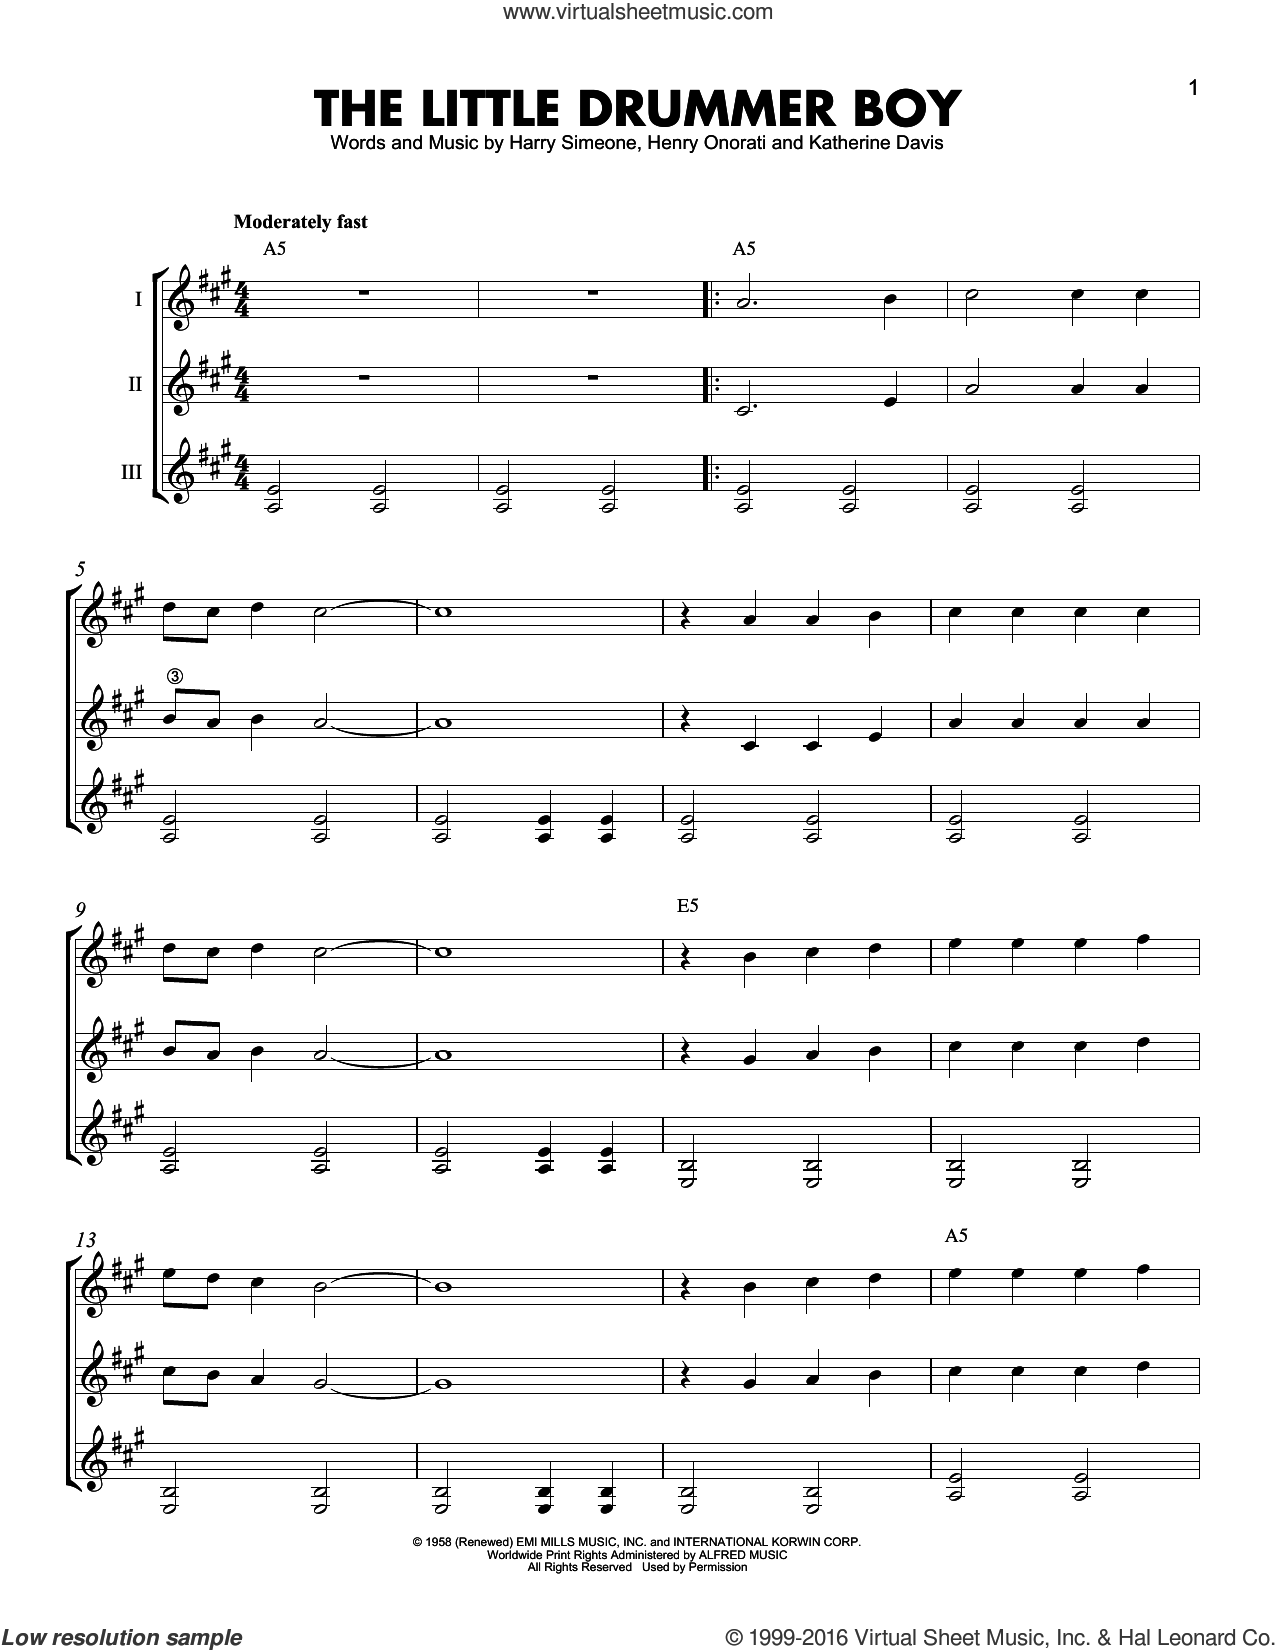 The Little Drummer Boy sheet music for guitar ensemble by Harry Simeone and Henry Onorati, intermediate skill level